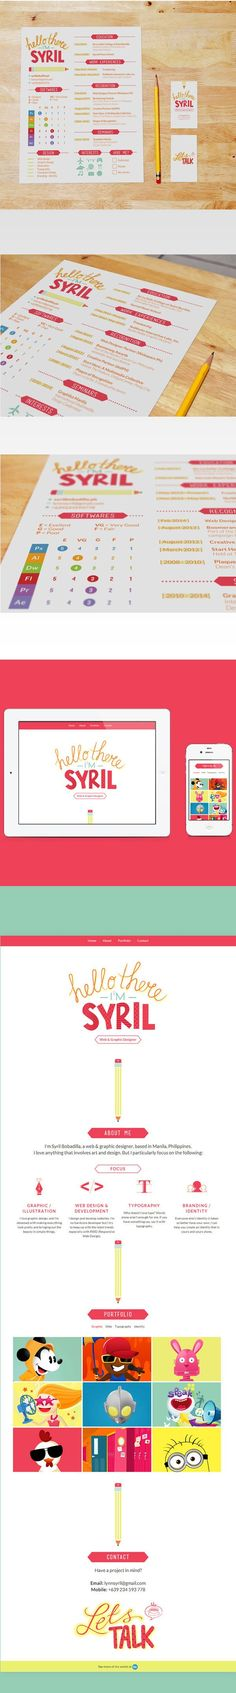 Self-Promotion by Syril Bobadilla, via Behance